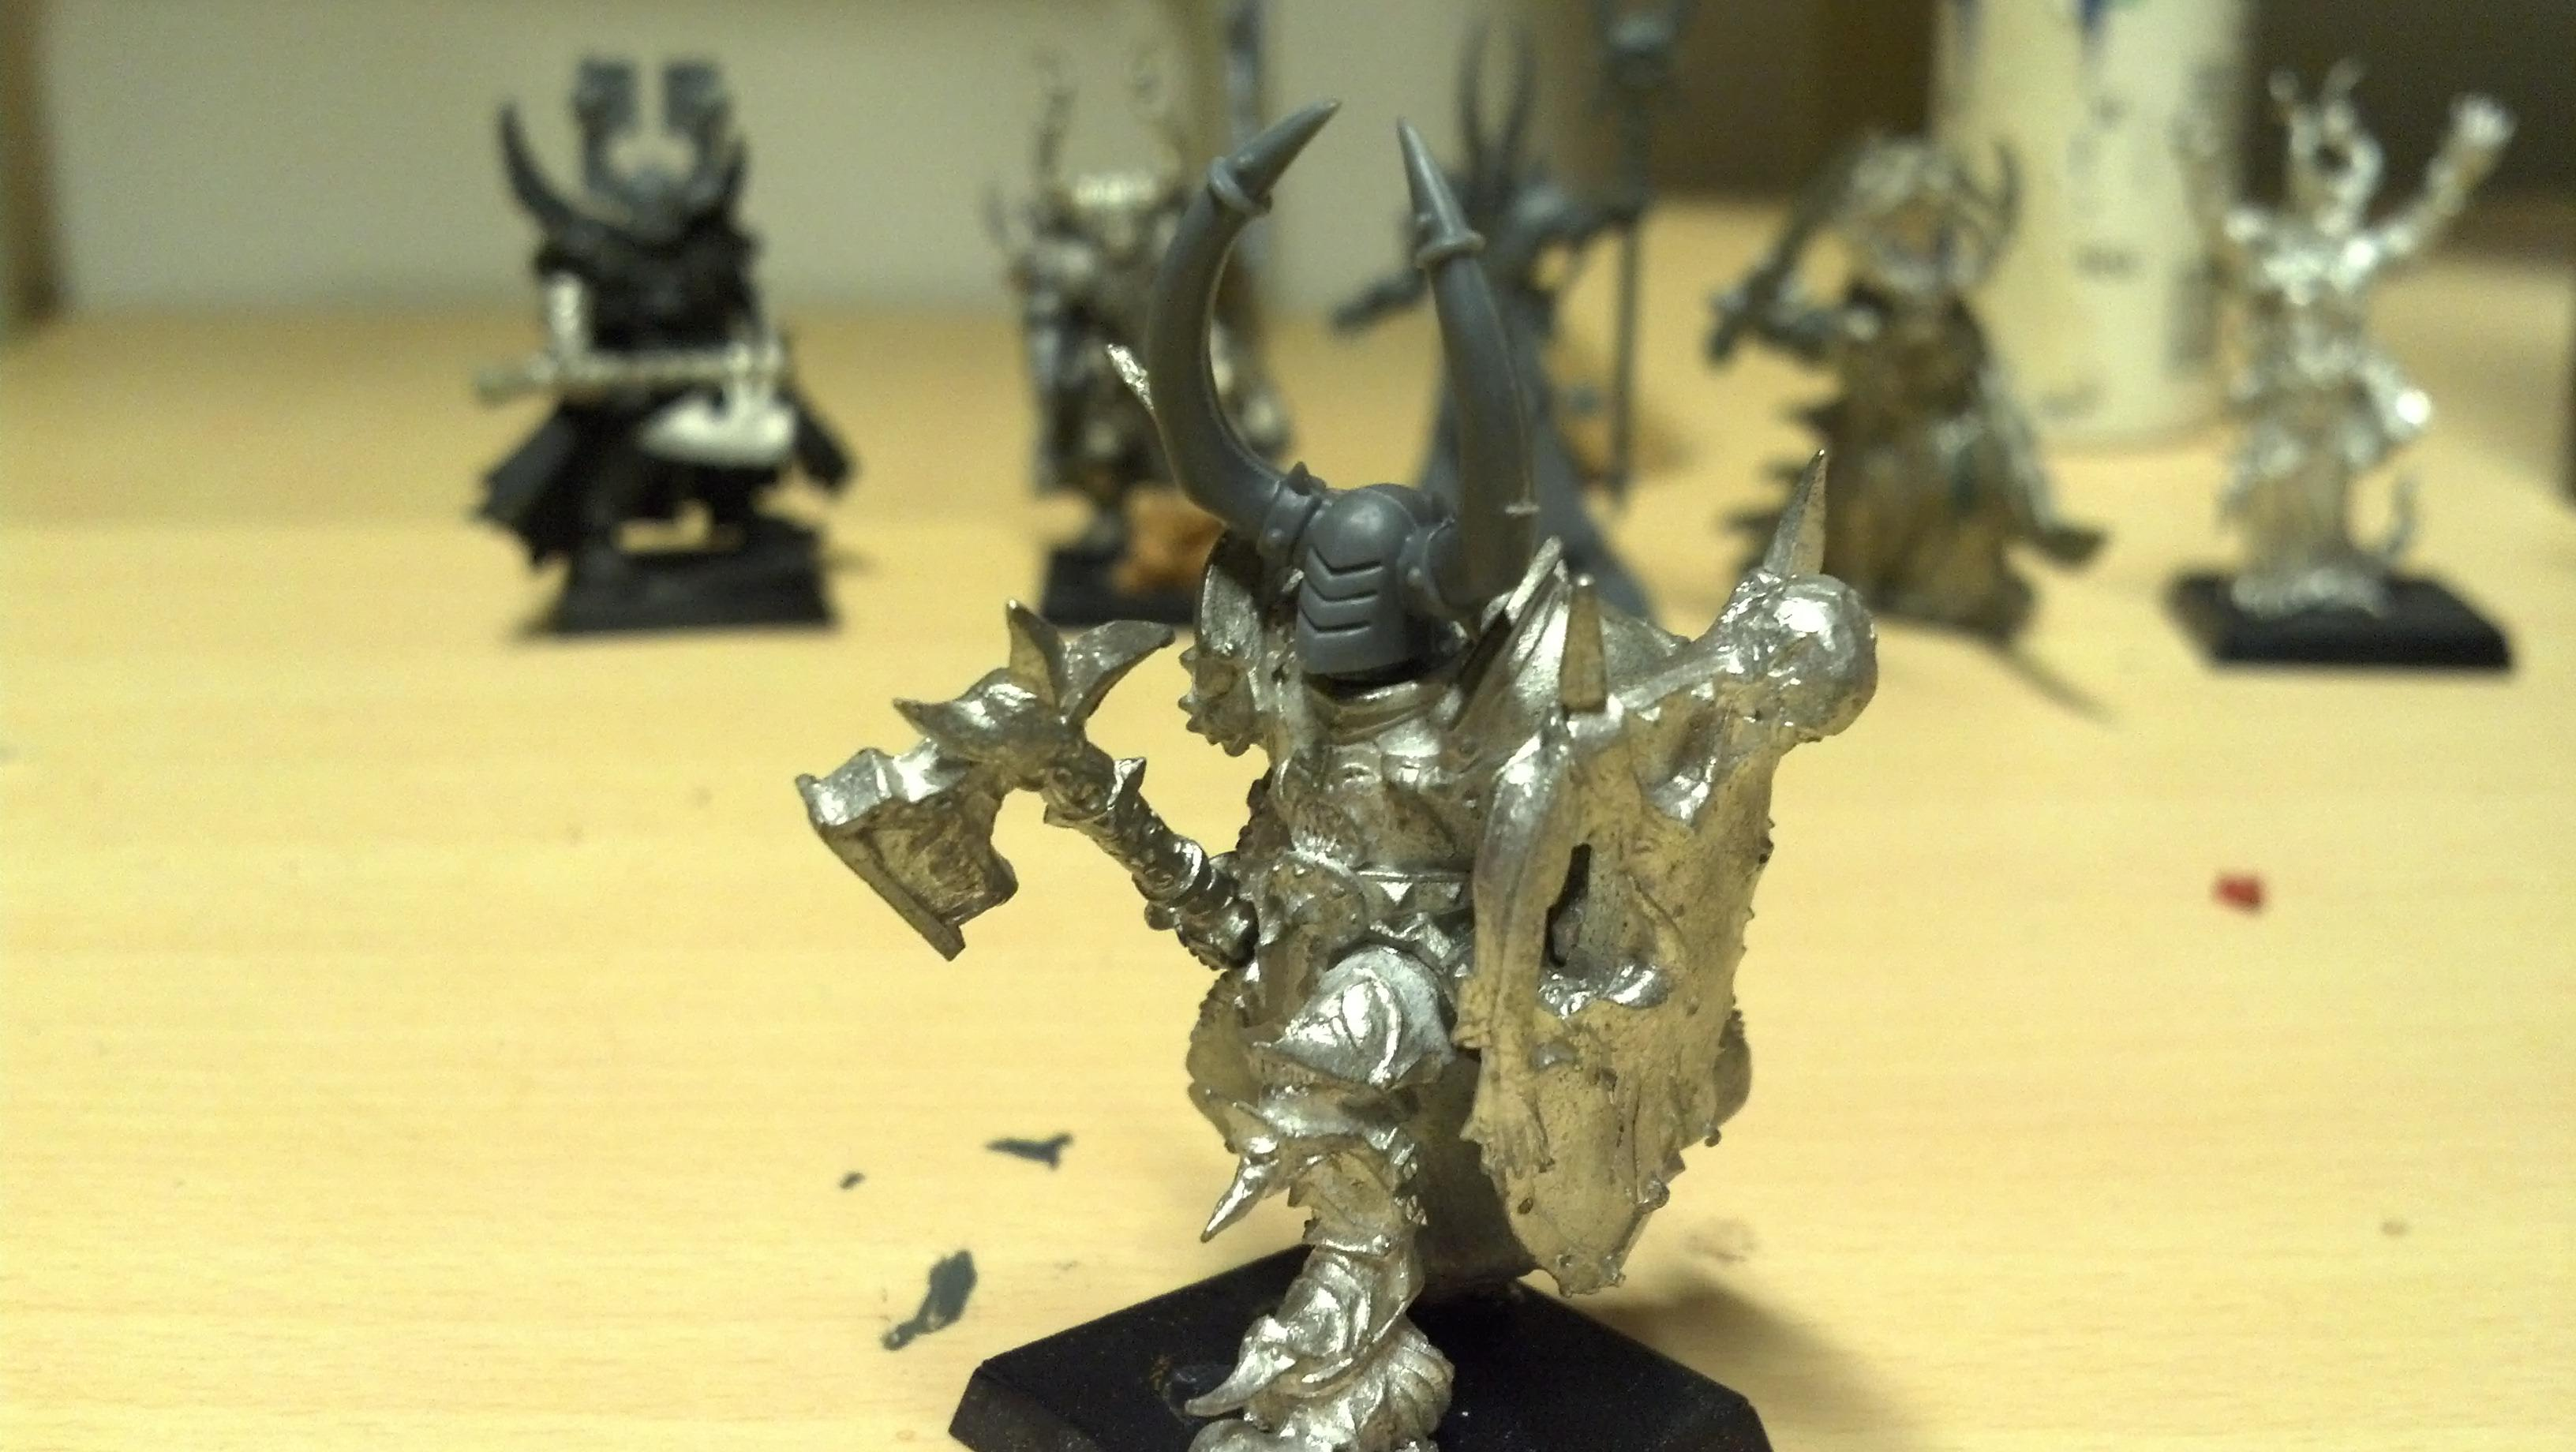 Harry the Hammer conversion